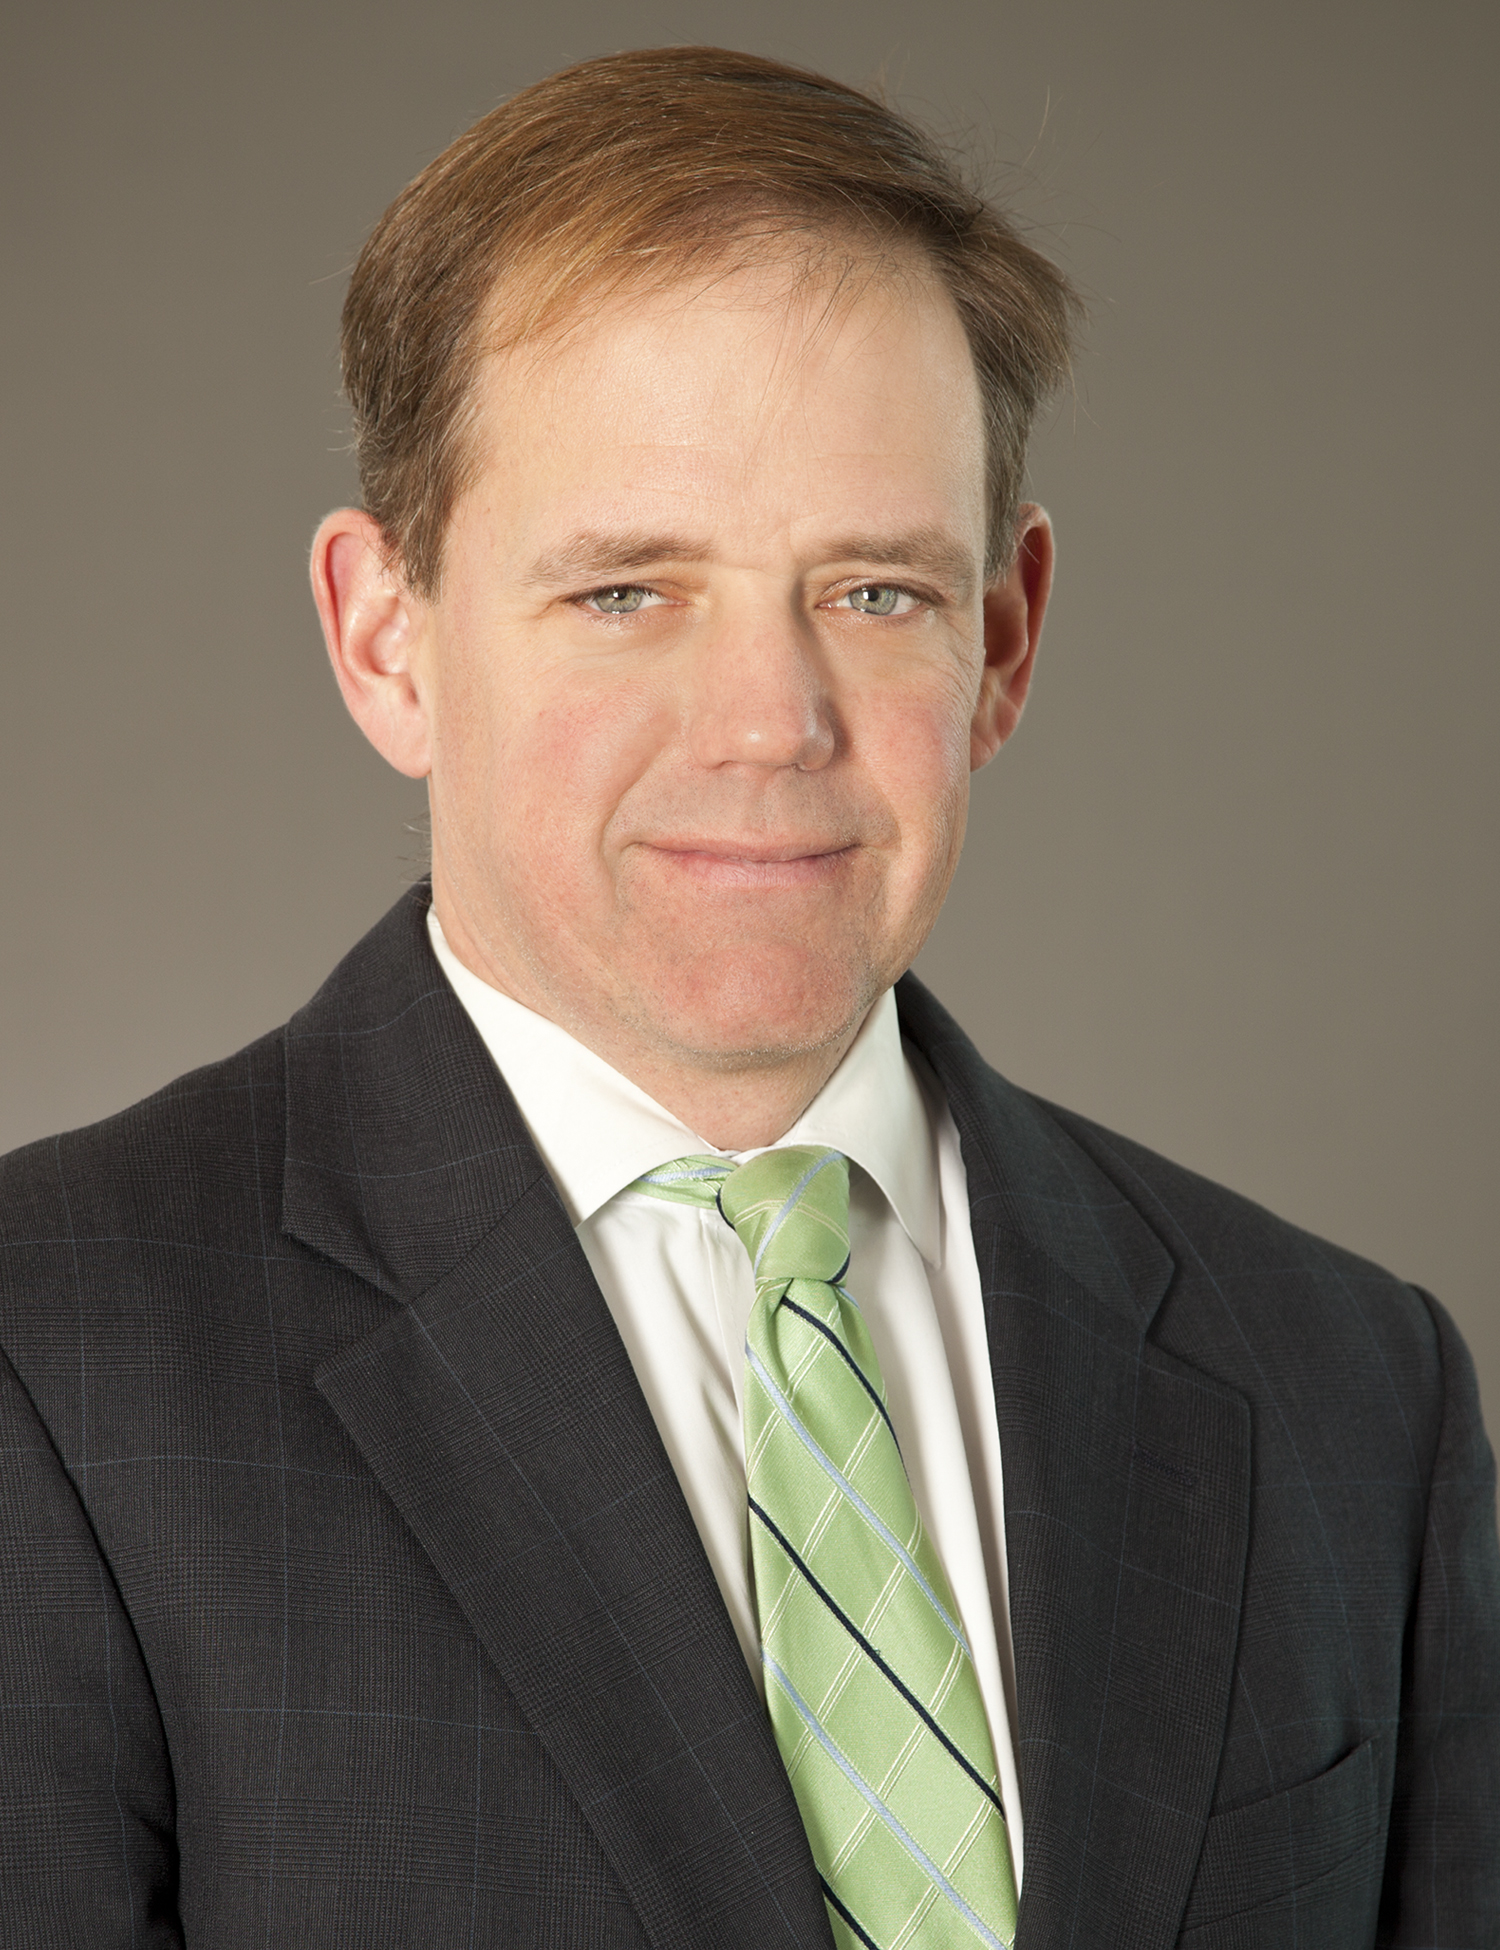 Former Massachusetts Deputy Attorney General Kevin Conroy on The Cannabis Reporter Radio Show hosted by Snowden Bishop